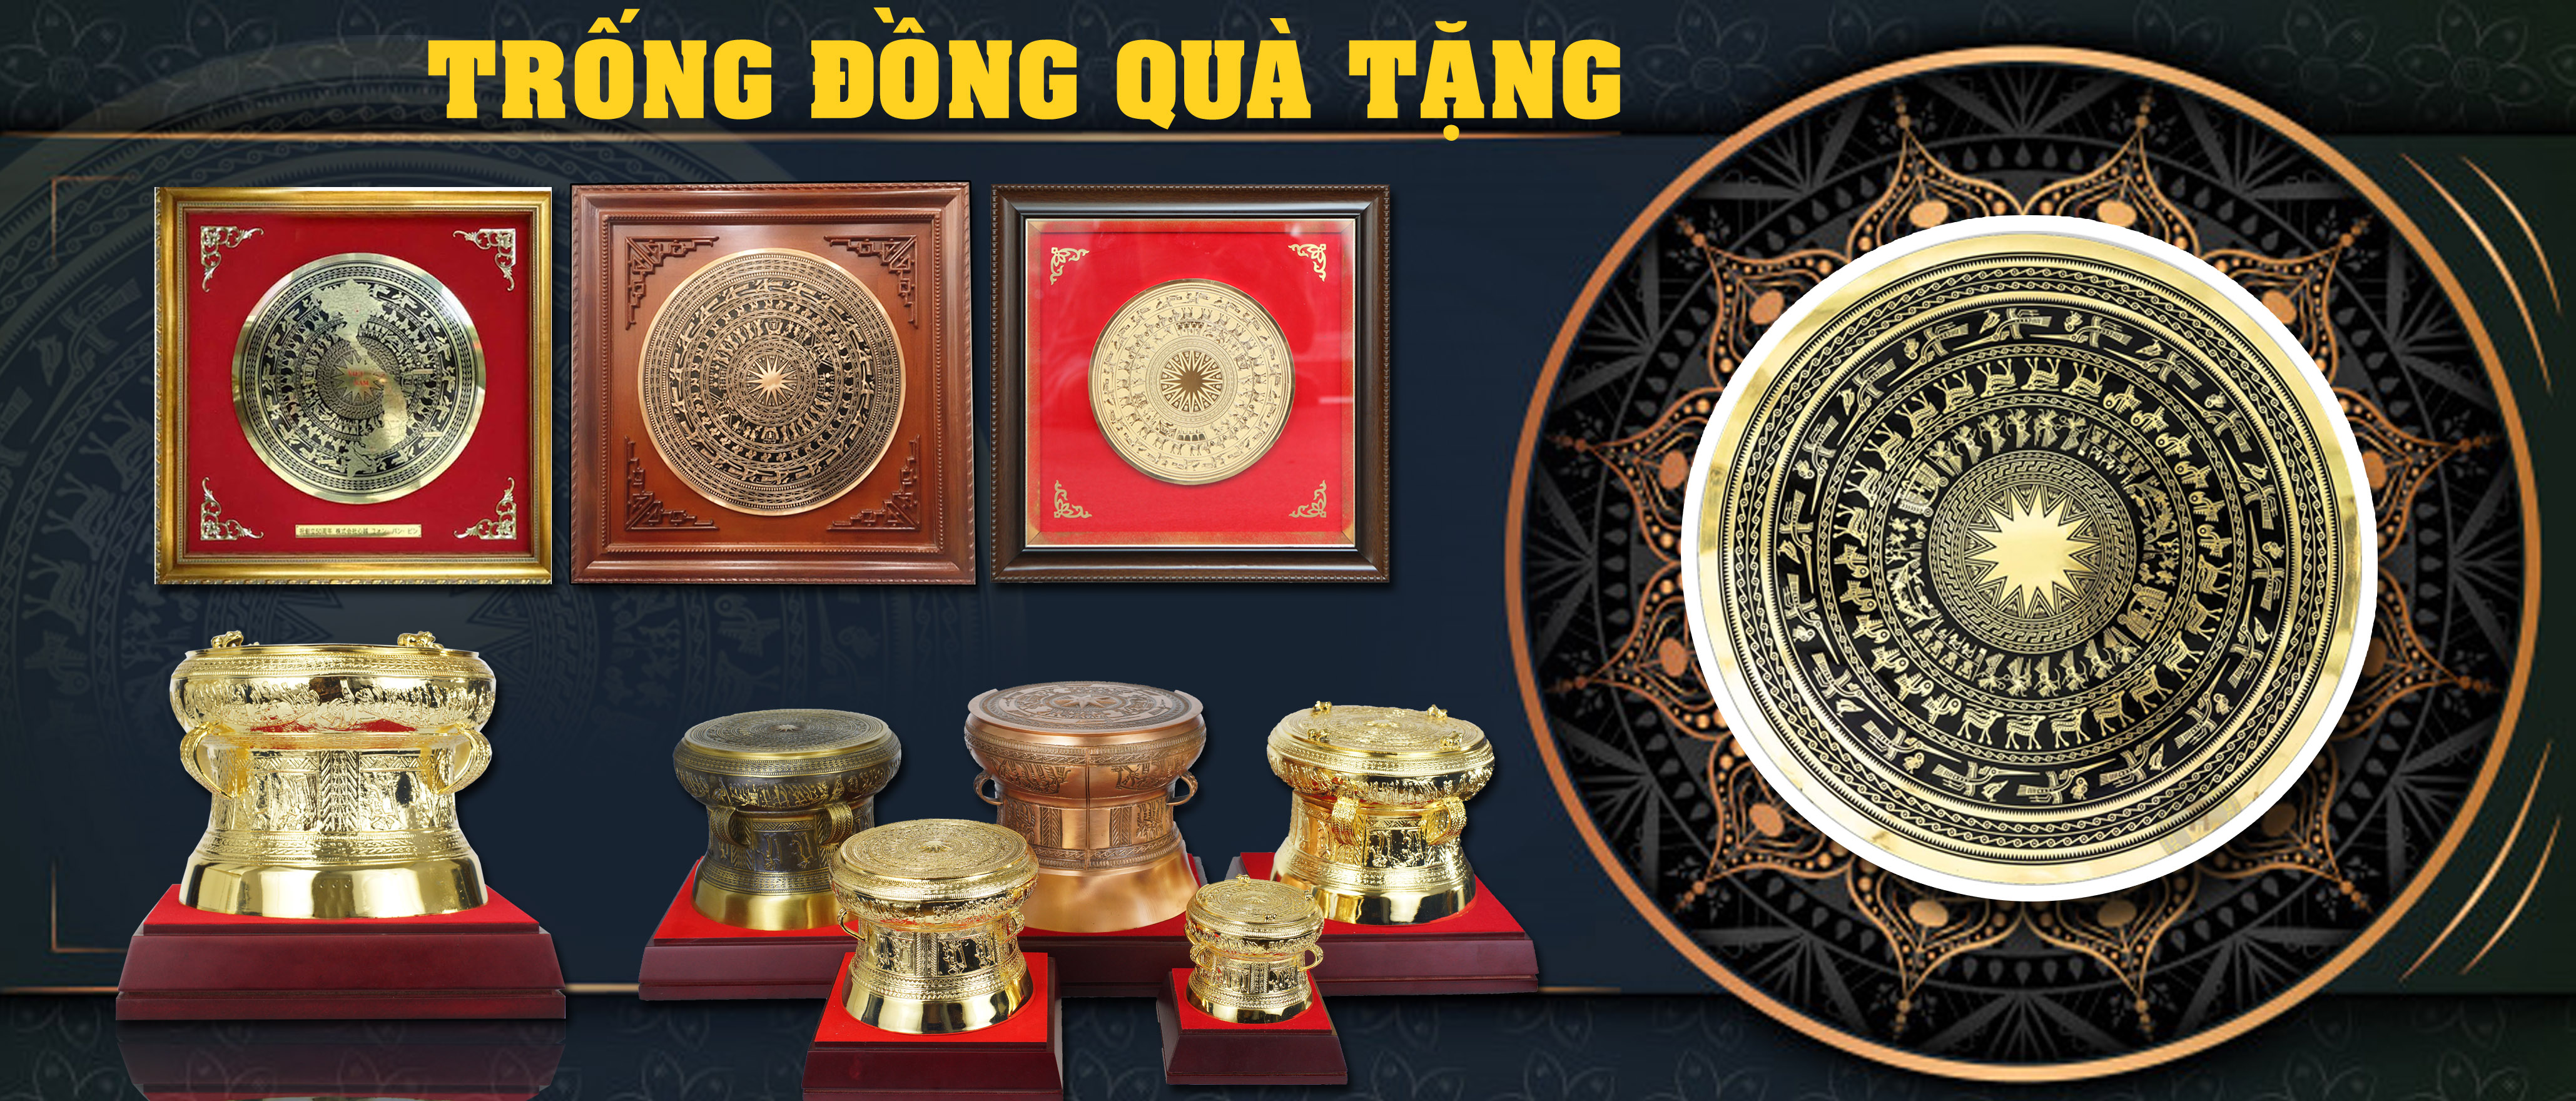 baner dinh dong tho cung